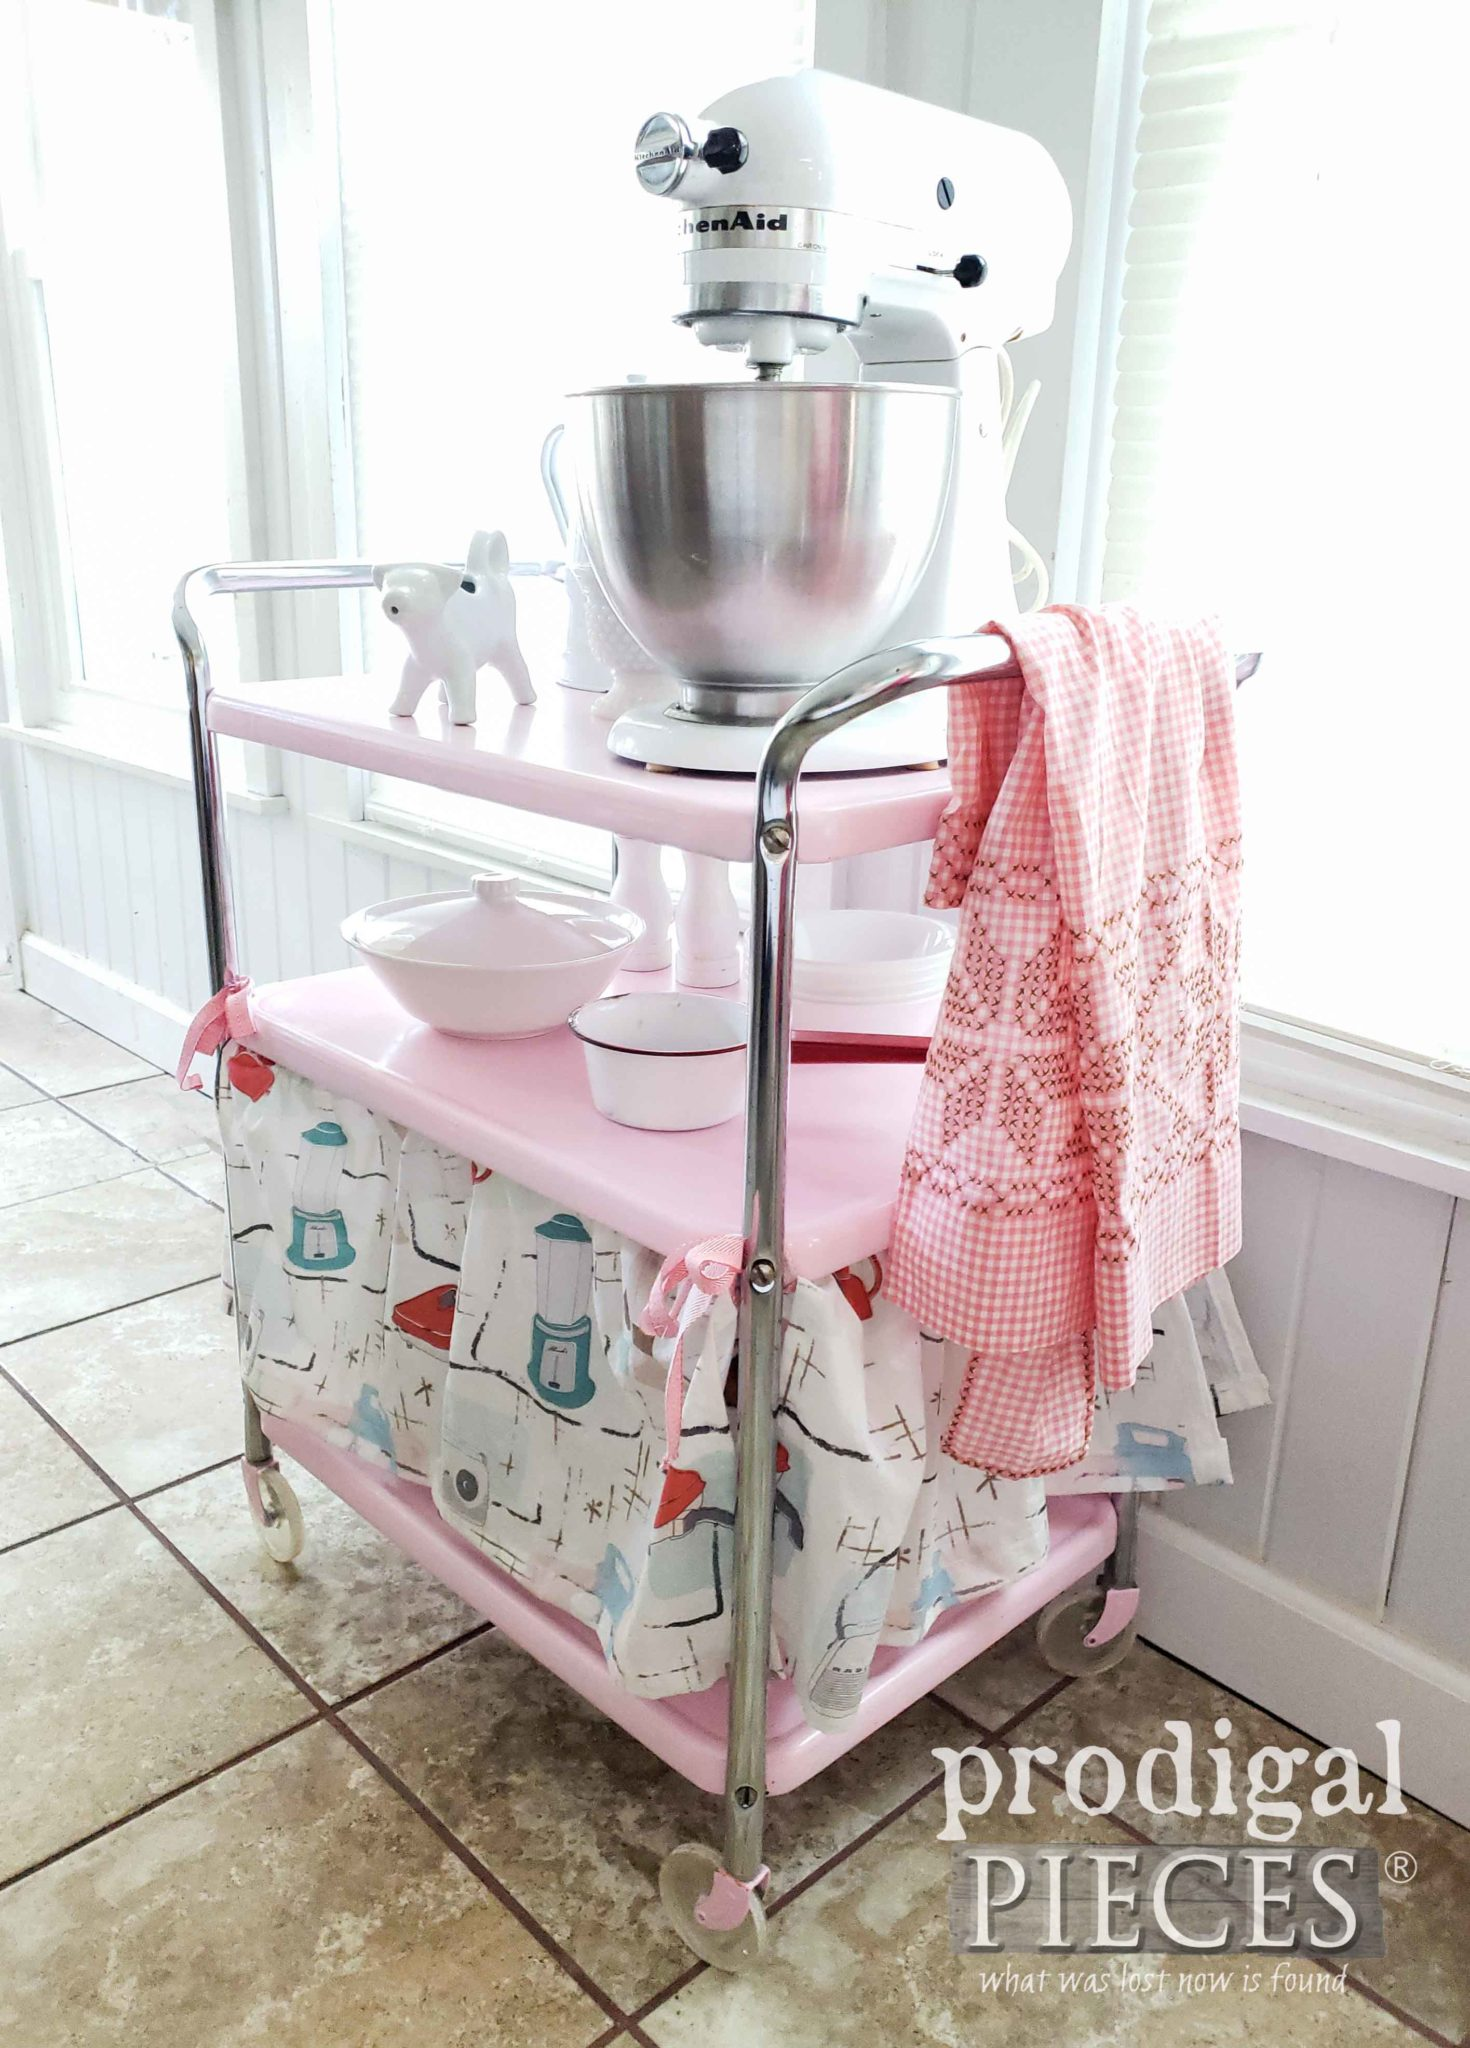 Pink Vintage Cosco Cart with Dust Ruffle Skirt by Larissa of Prodigal Pieces | prodigalpieces.com #prodigalpieces #diy #home #homedecor #furniture #retro #vintage